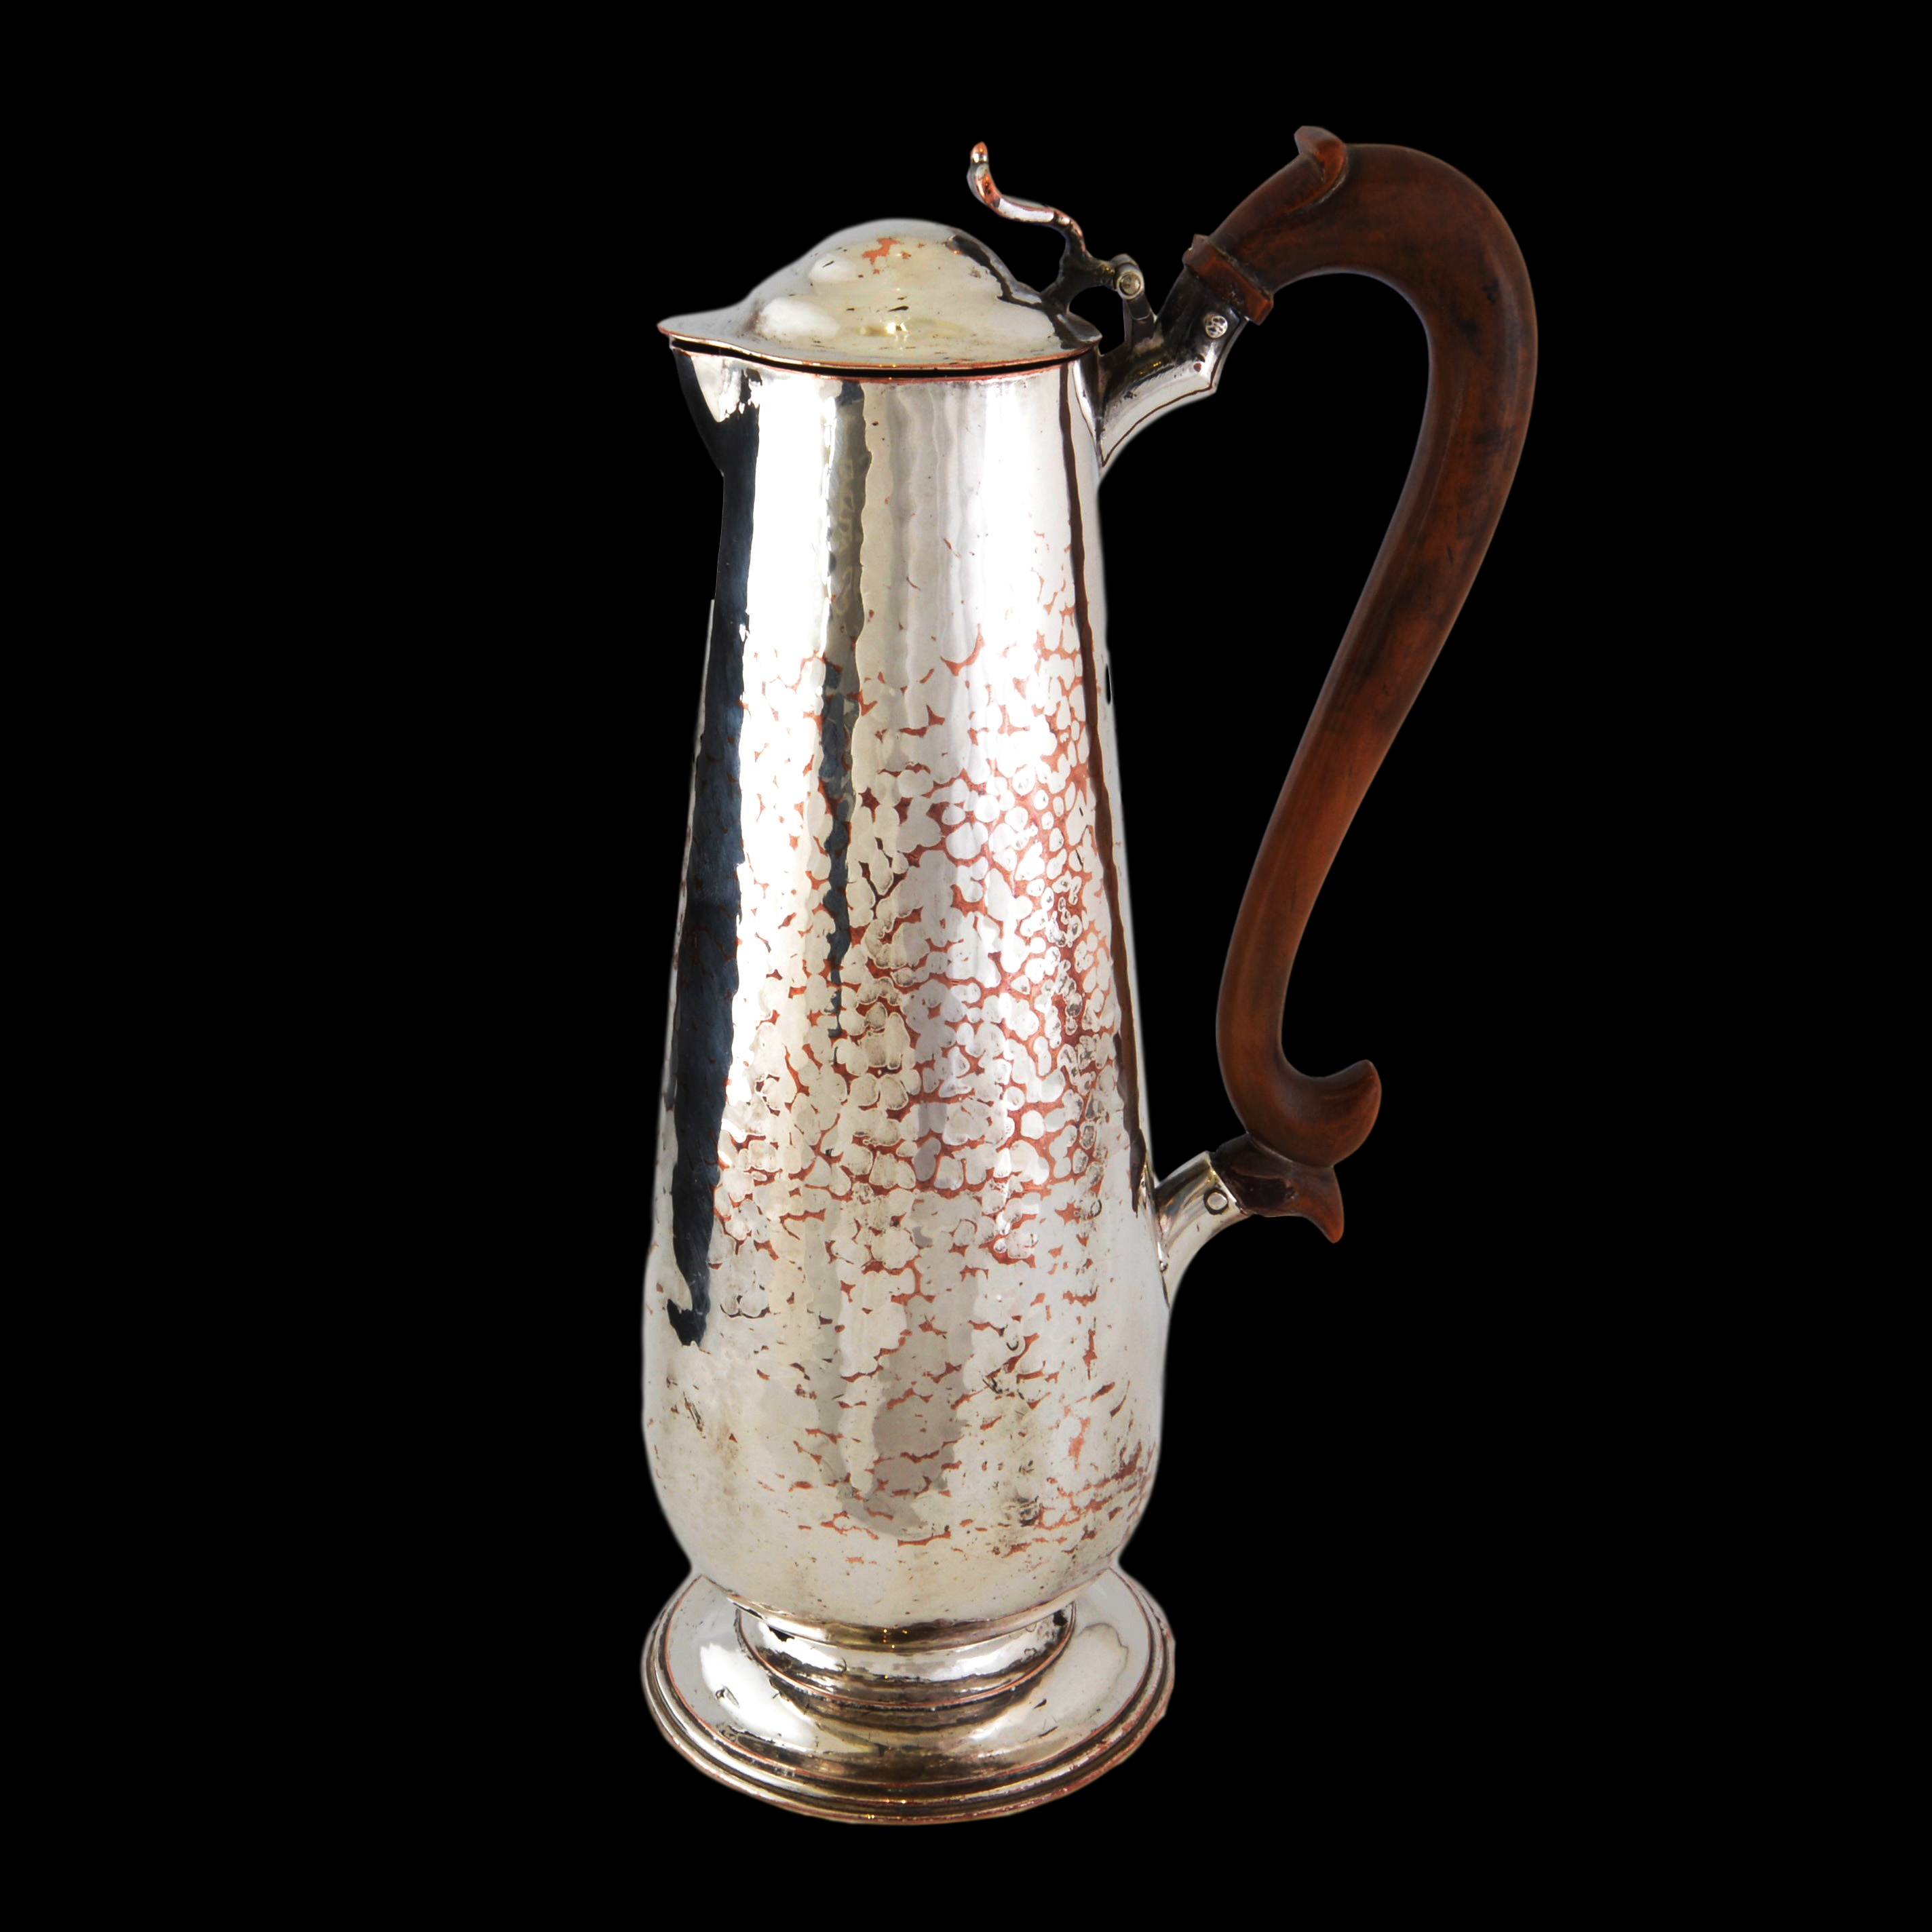 William Mark, Guild of Handicraft, Ashbee jug